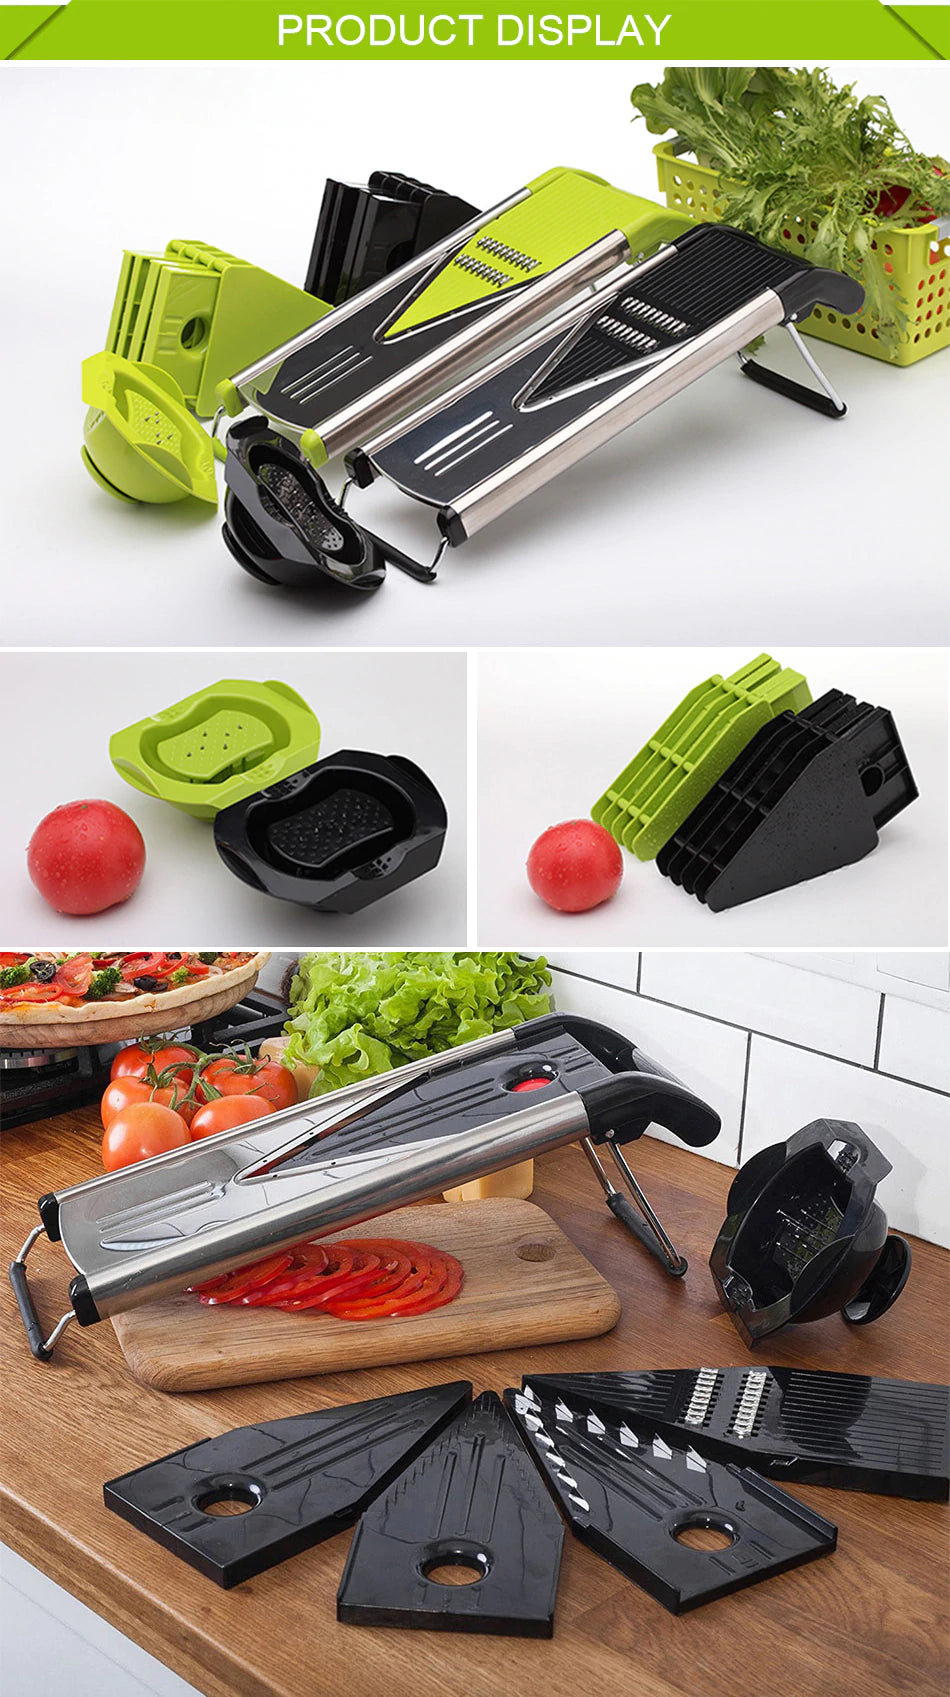 2019 German 304 Stainless Steel V Blades Multi Function Vegetable Cutter & Mandoline Slicer Adjustable Blades Onion Fruits Fries Tomato Cucumber Cheese Potato Fry Carrot Veggie Machine | Best Quality Mandoline Shredder| Vegetable Chopper Grater Salad Potato Chip Maker | Thin Thick Coarse Wave Strips Julienne Cut